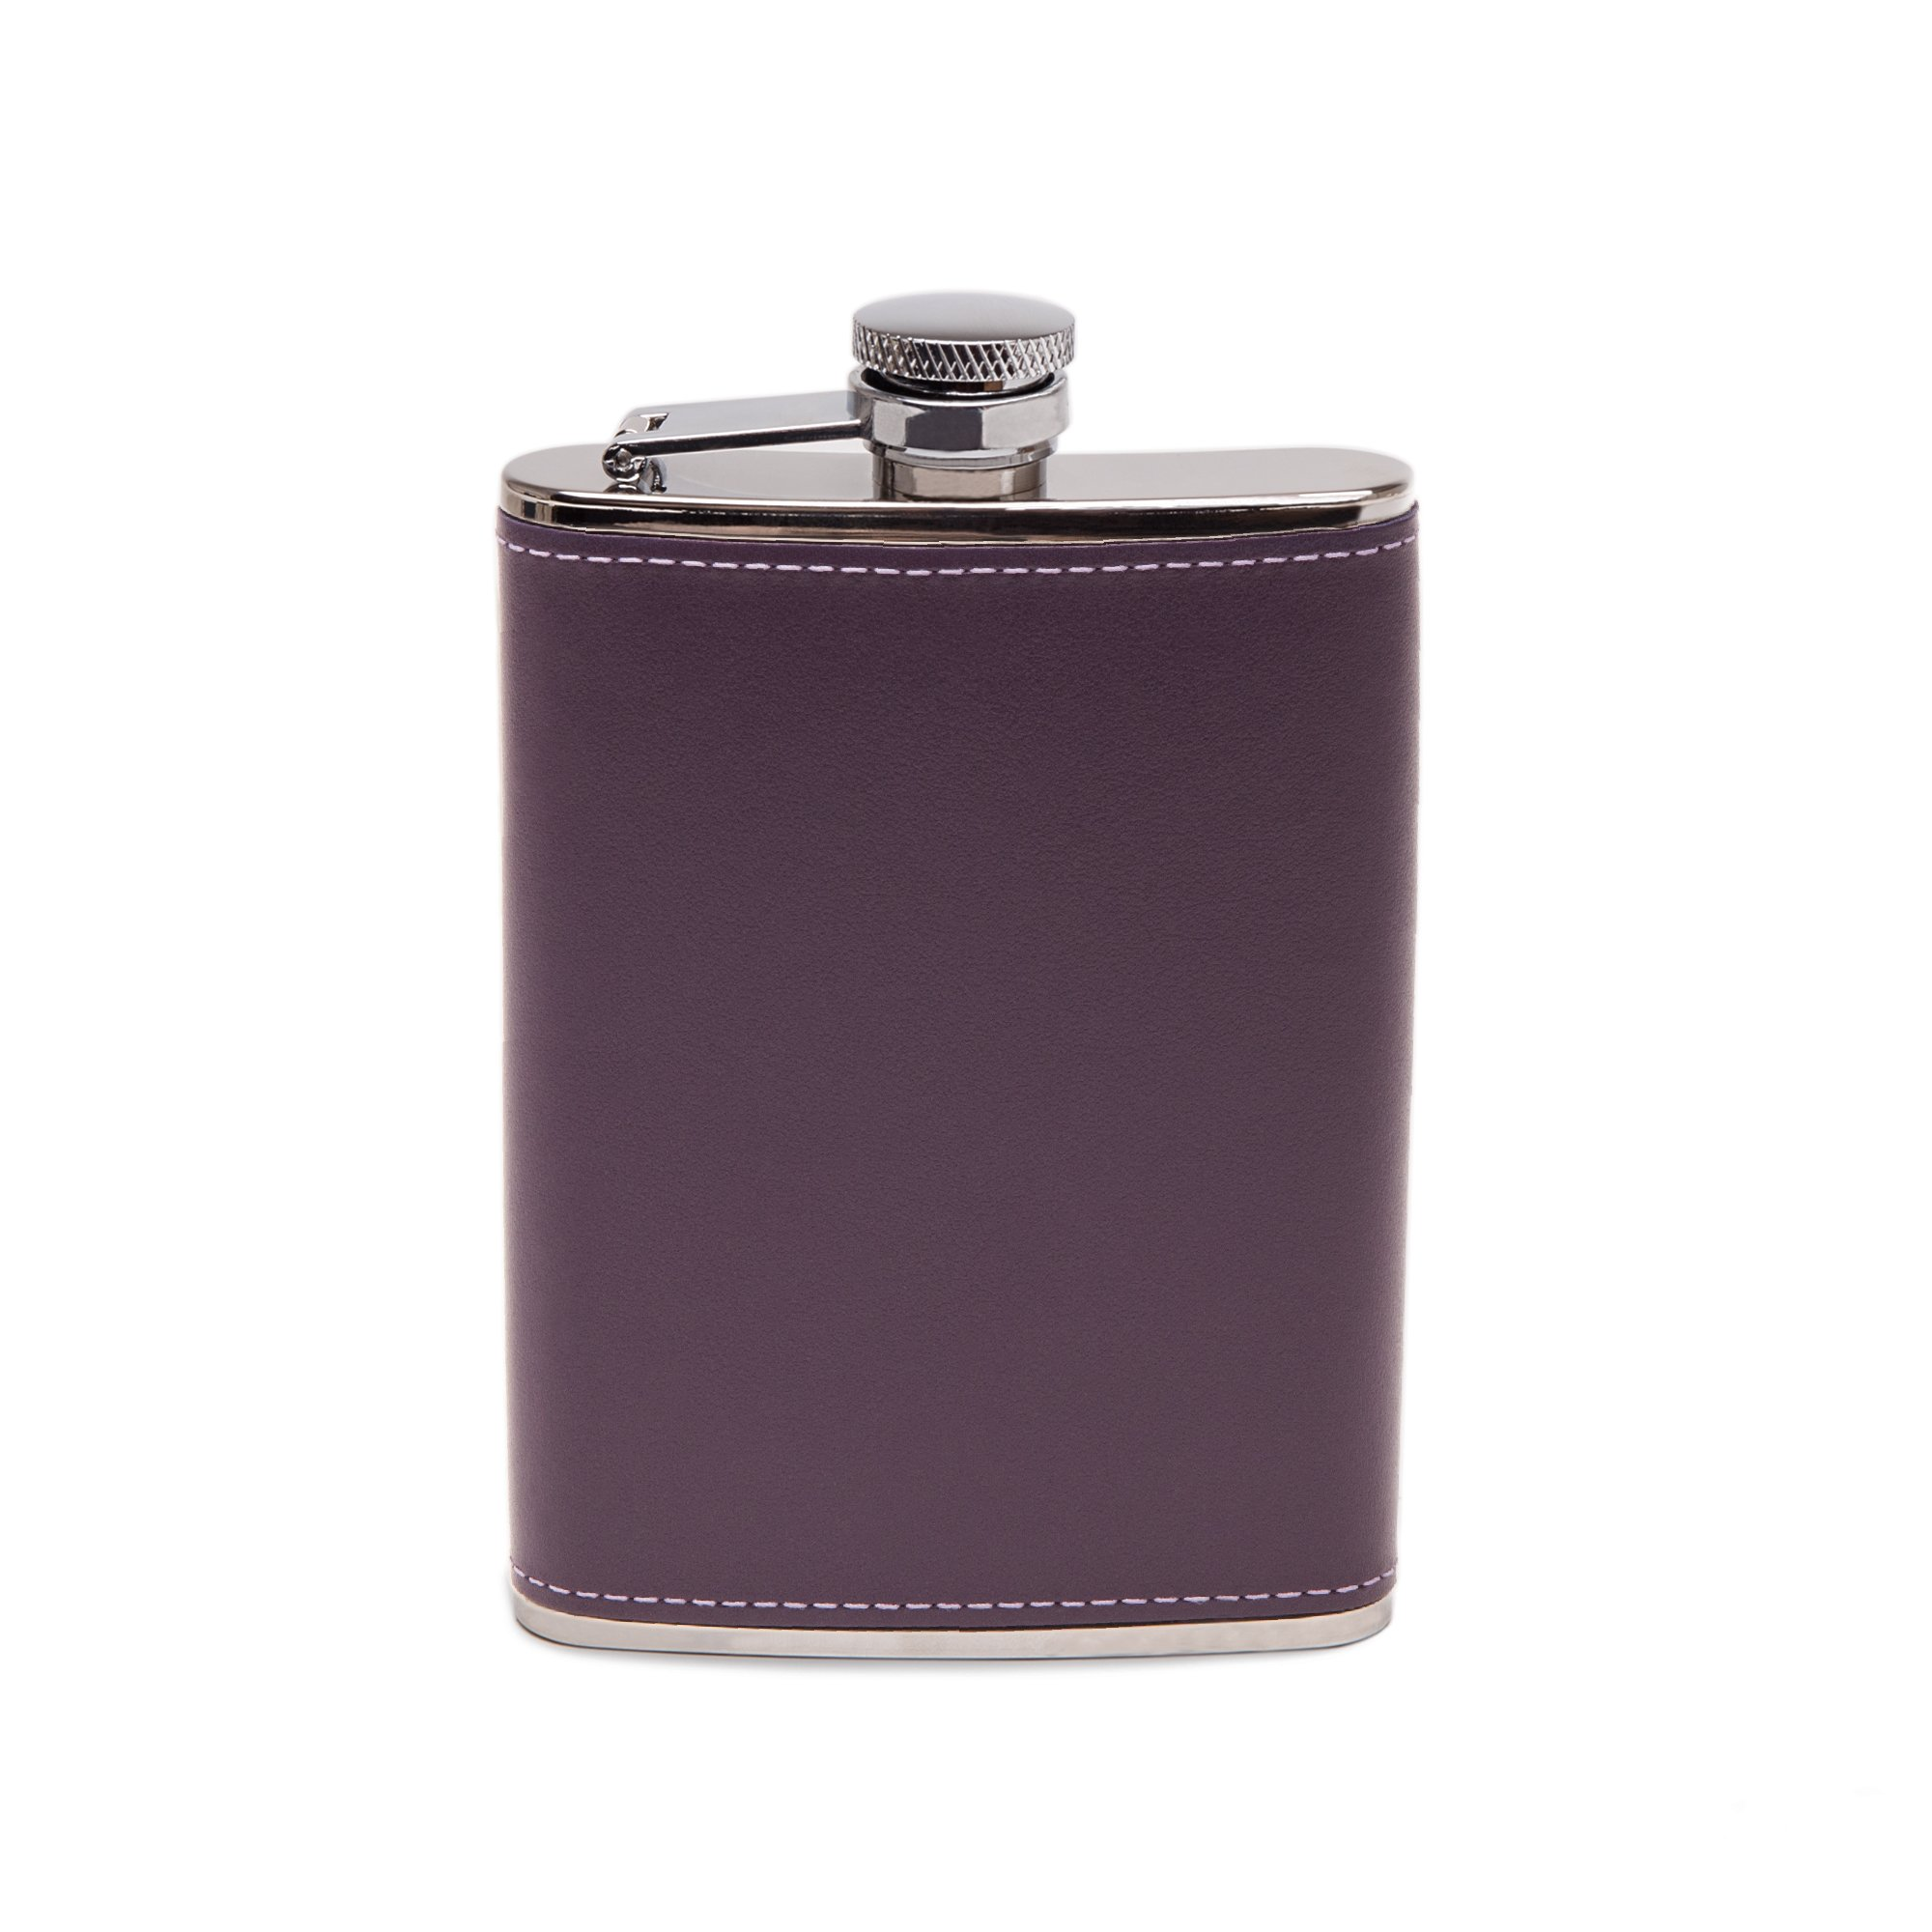 Ettinger Sterling Collection Captive Top Leather Bound Hip Flask, 6 Ounces - Purple/Silver